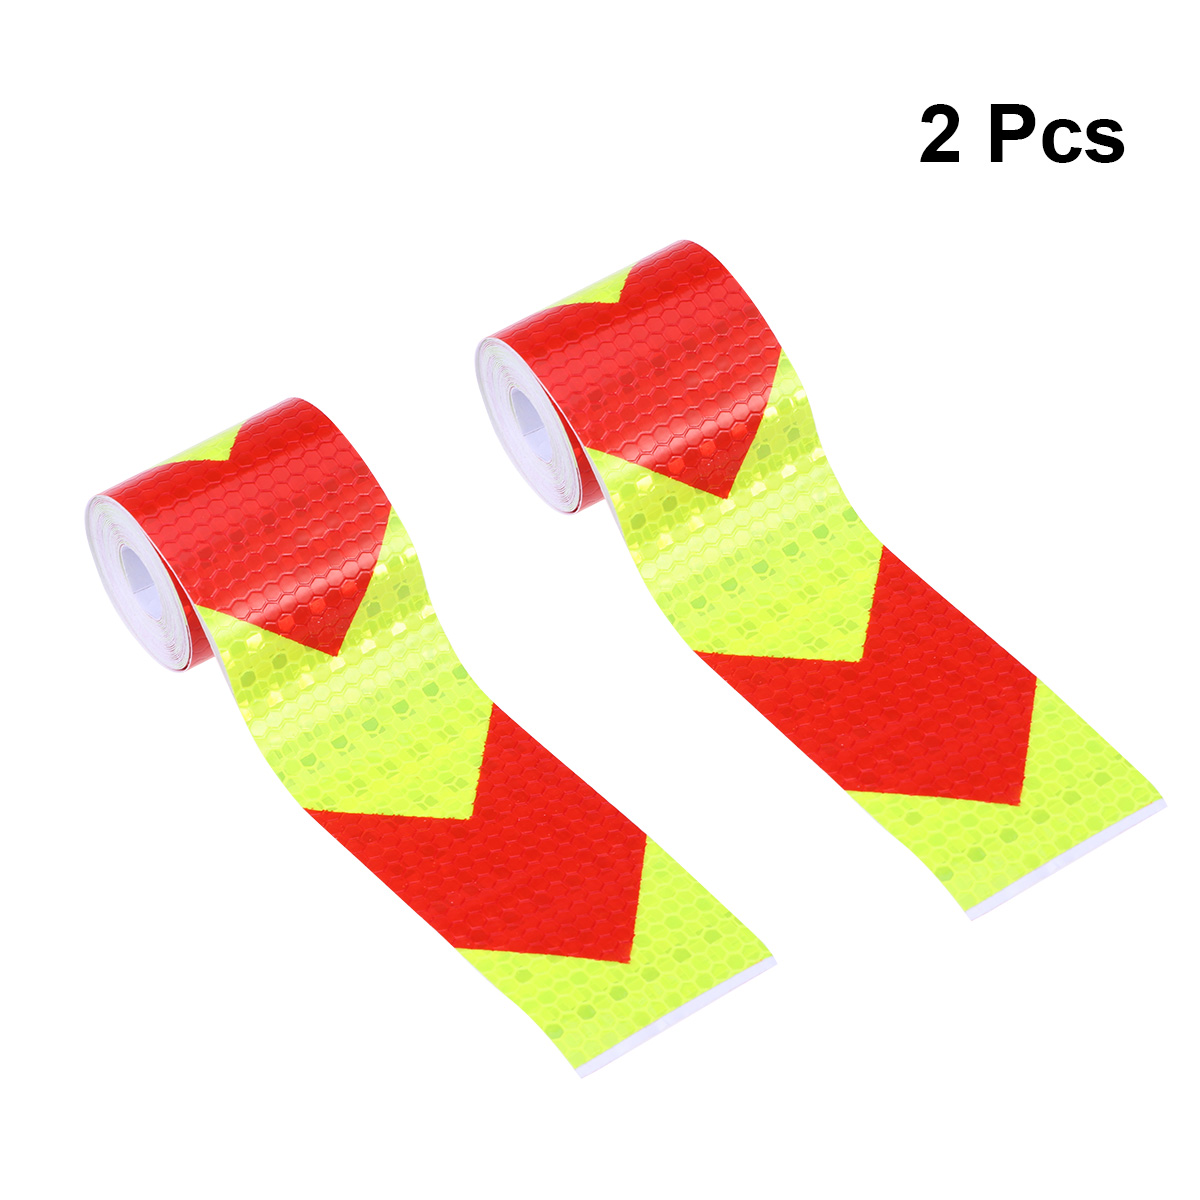 Tape Auto Truck Self-adhesive Arrow Tape Strip  Night Safety Reflective Strips